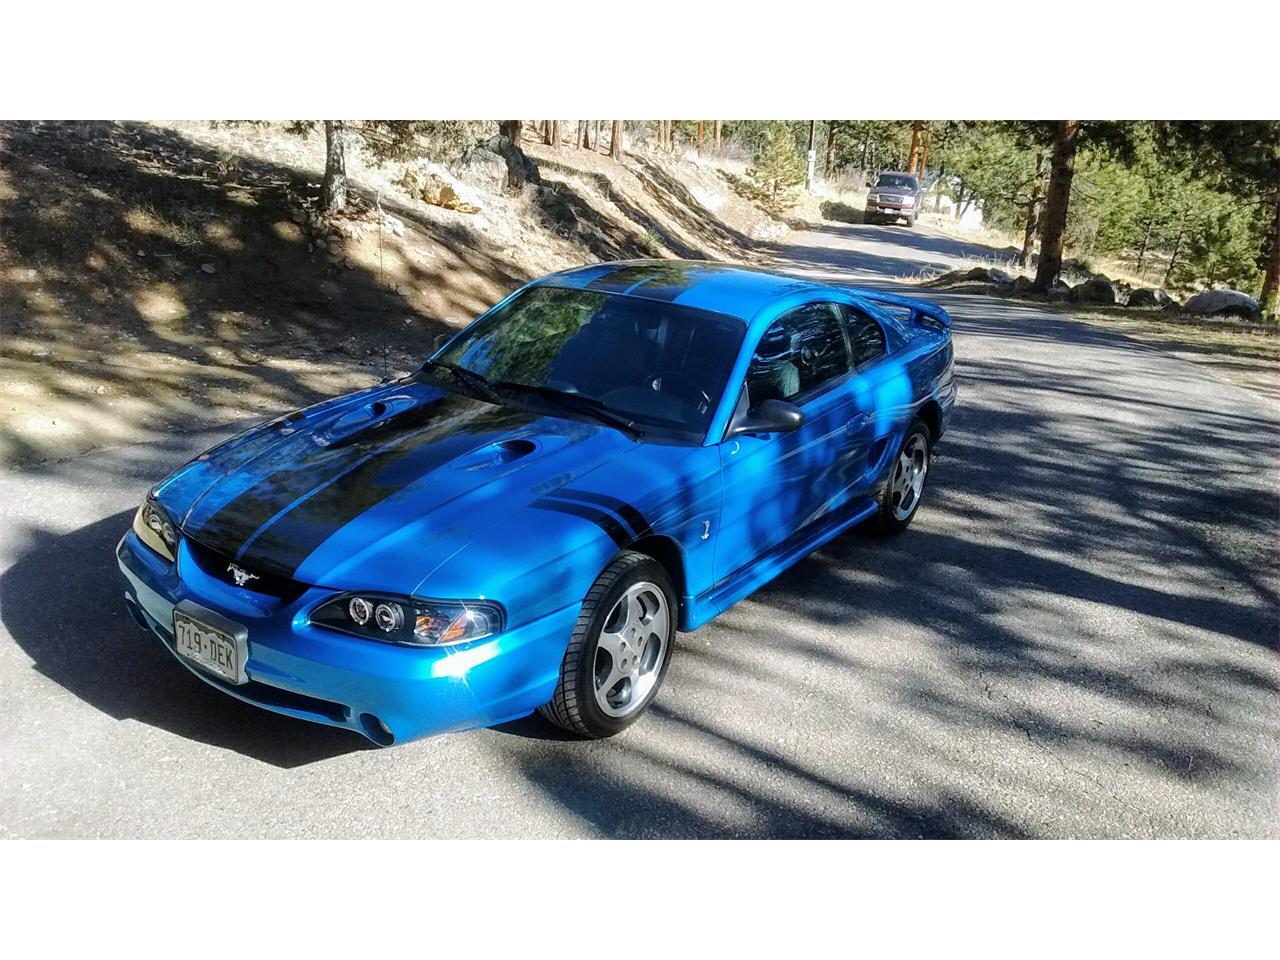 Large Picture of '96 Mustang Cobra located in Denver West Colorado - $9,250.00 Offered by a Private Seller - MTB2